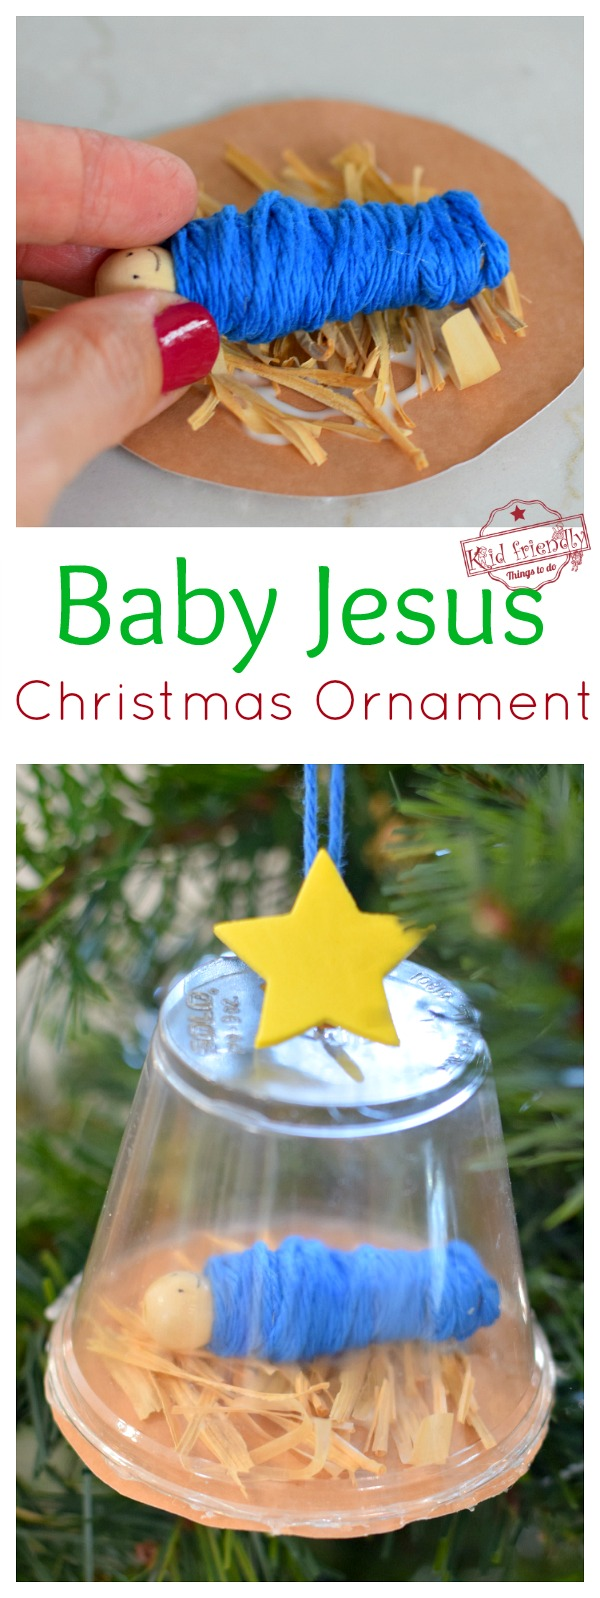 Baby Jesus Nativity Ornament